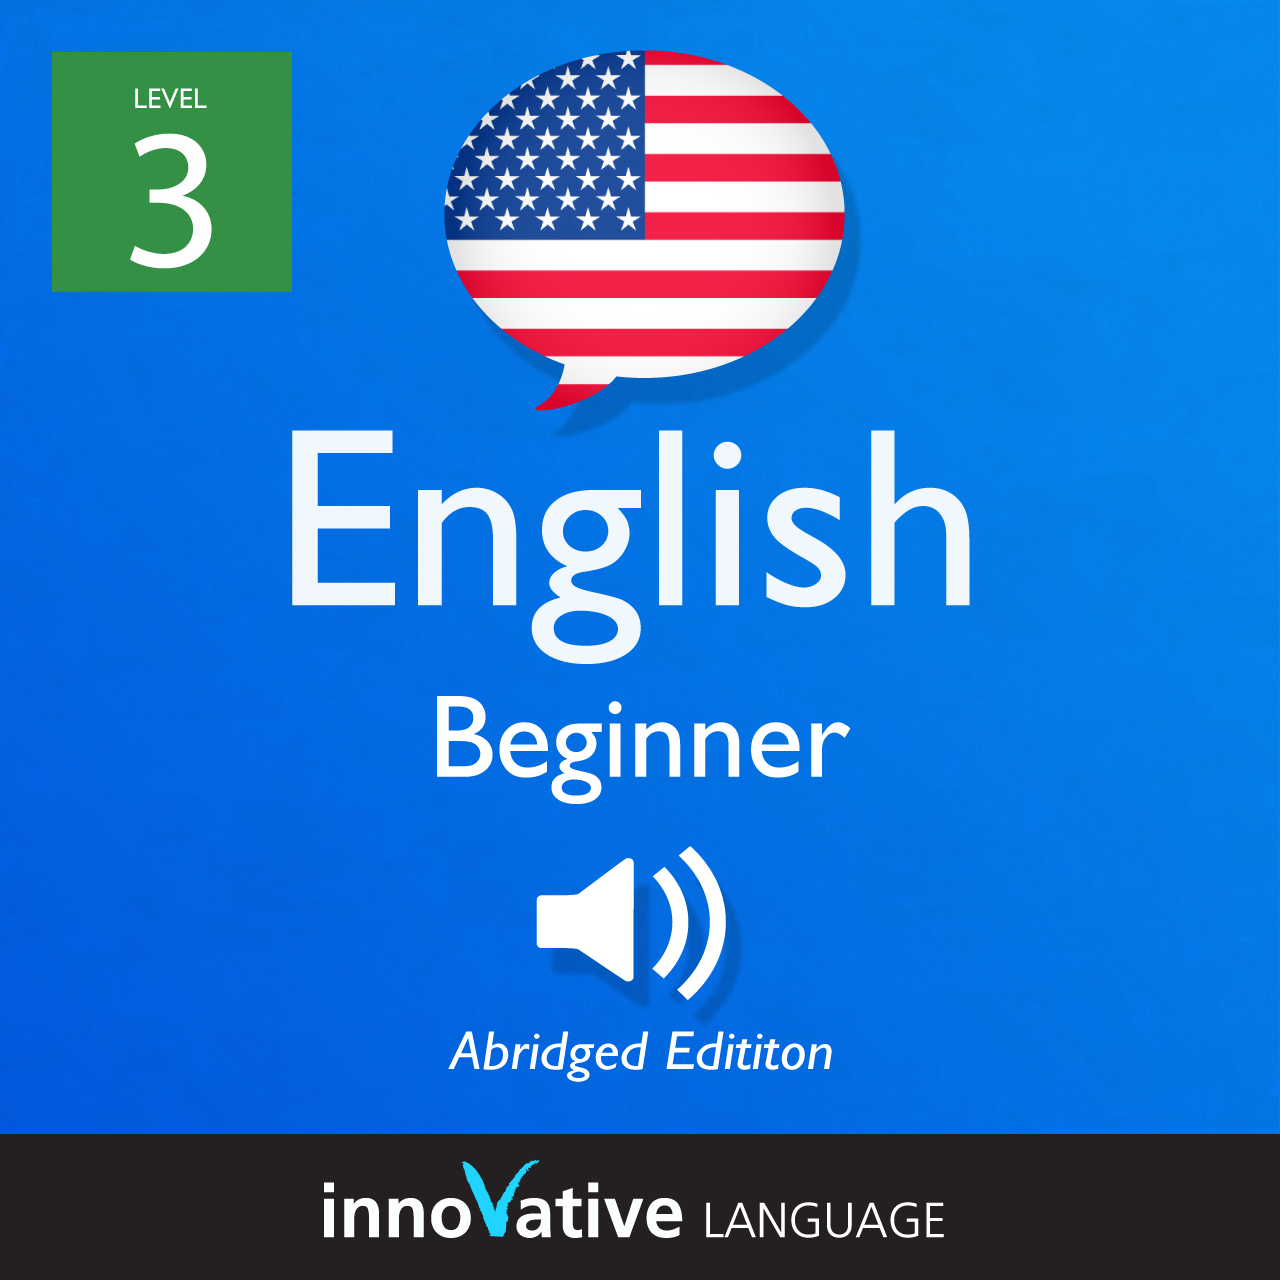 [Audiobook] Learn English - Level 3: Beginner English (Fluency Fast Edition)